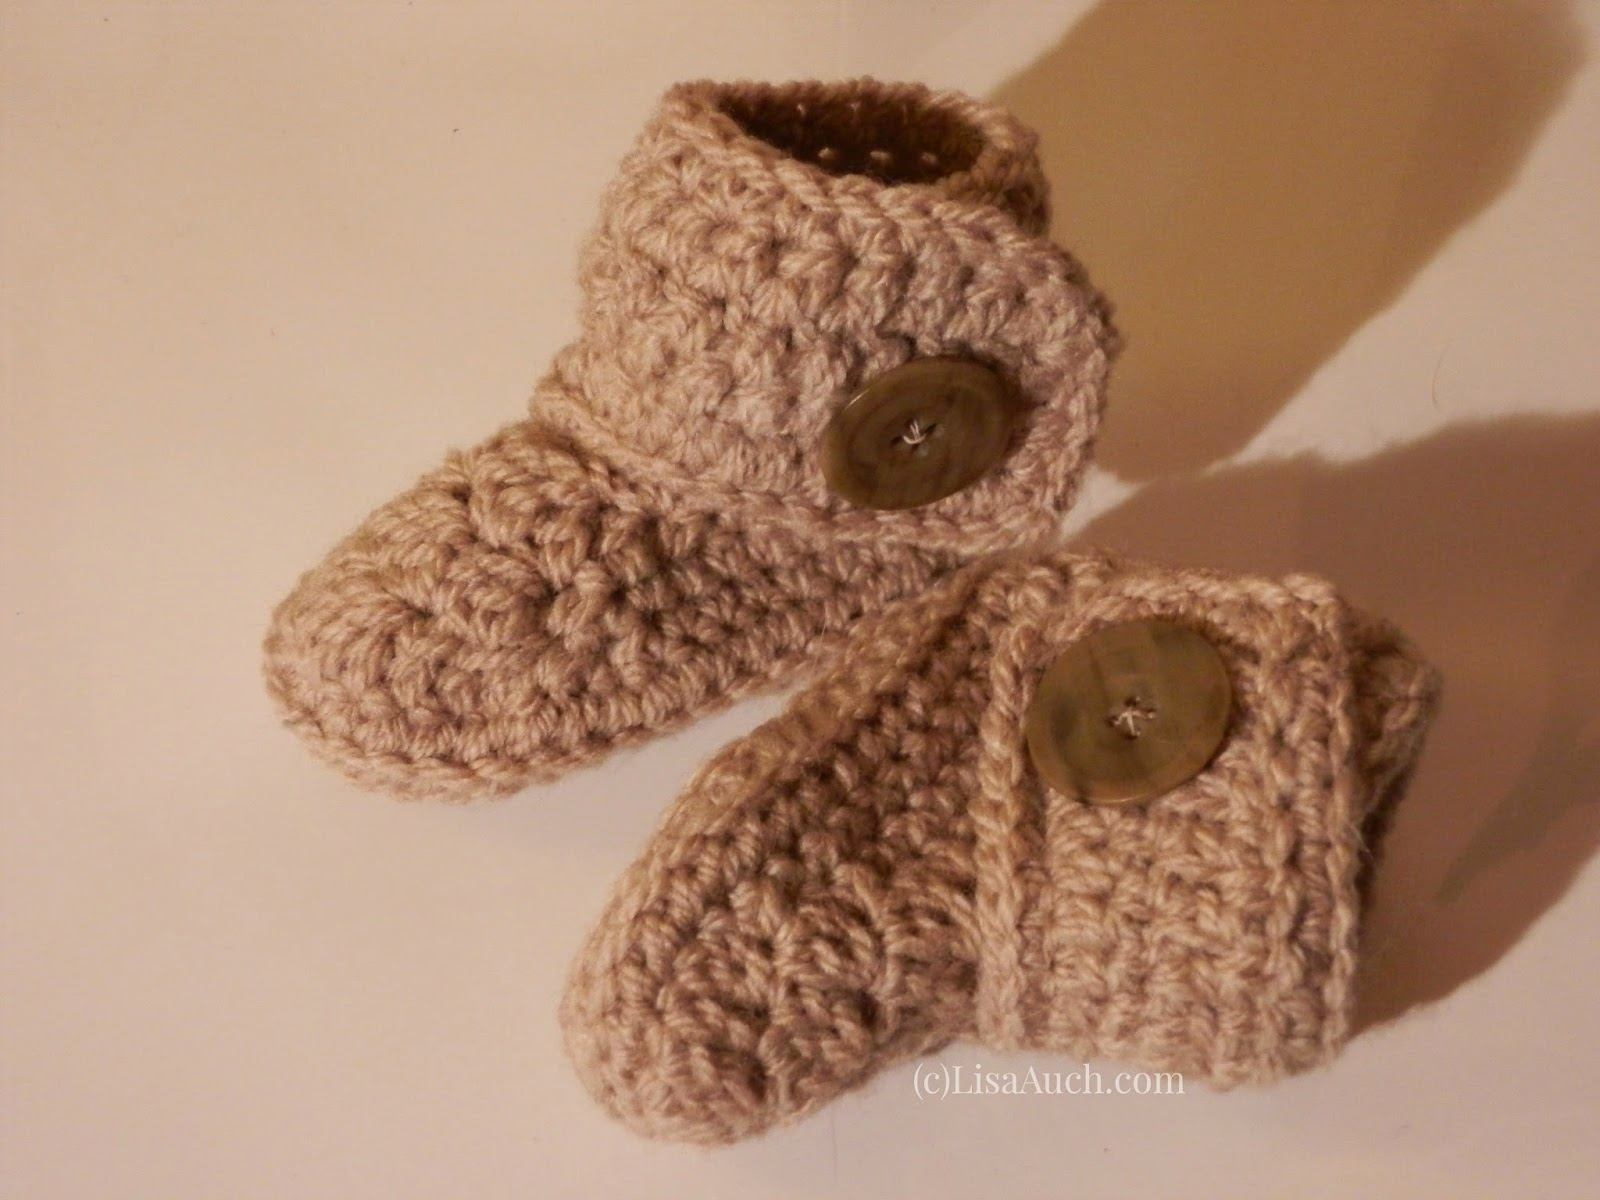 Free Crochet Pattern Baby Ugg Booties : Free Crochet Patterns and Designs by LisaAuch: Free ...